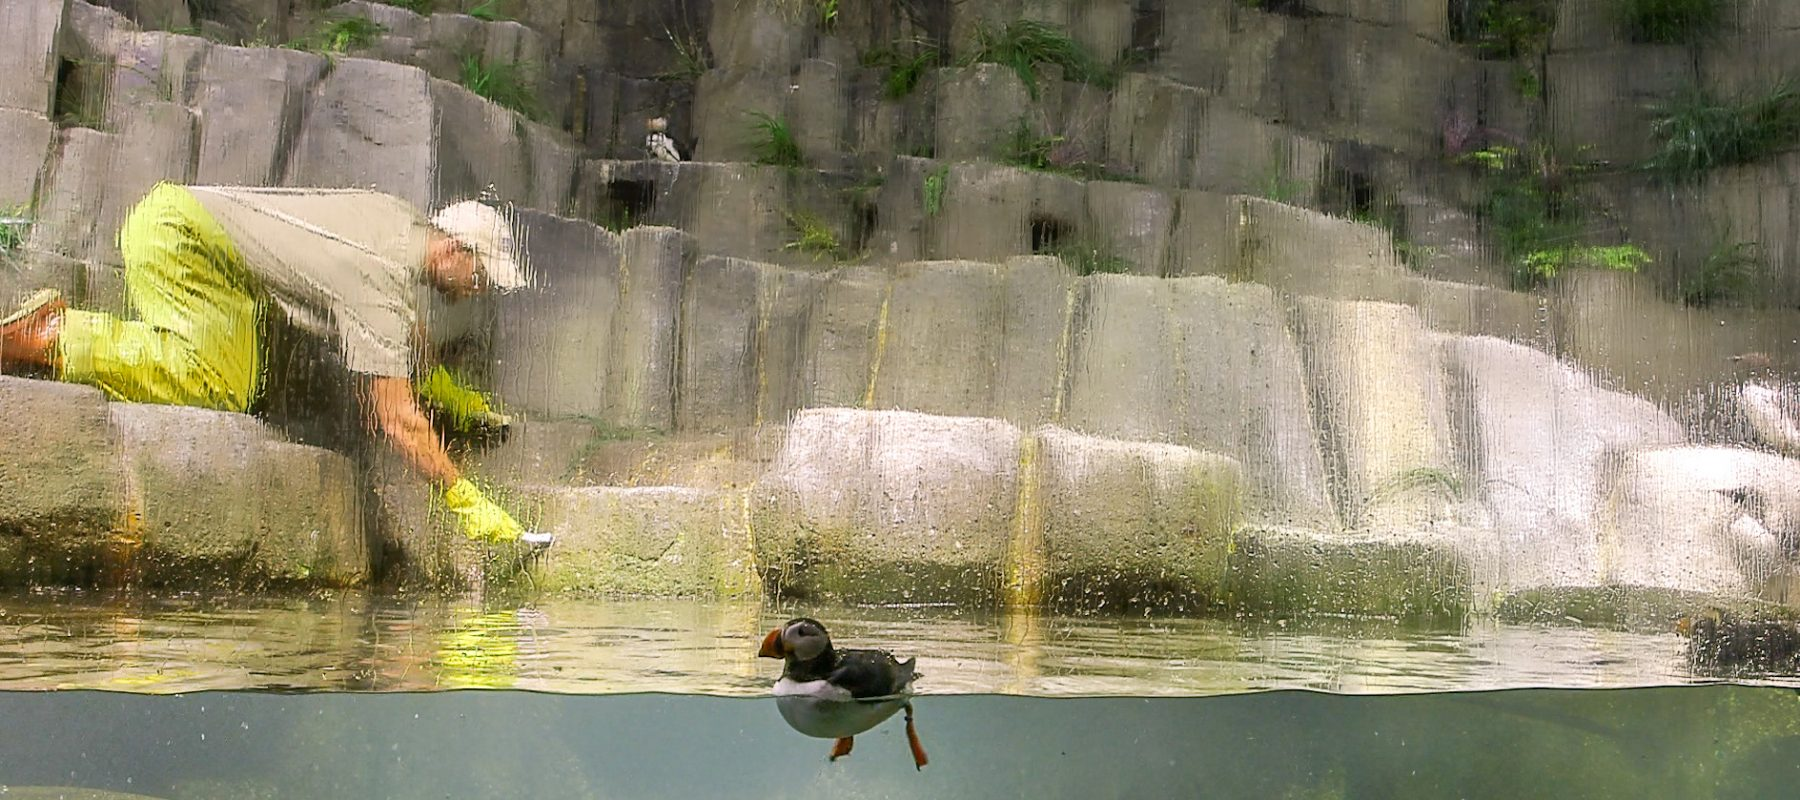 A building with a bird in the water